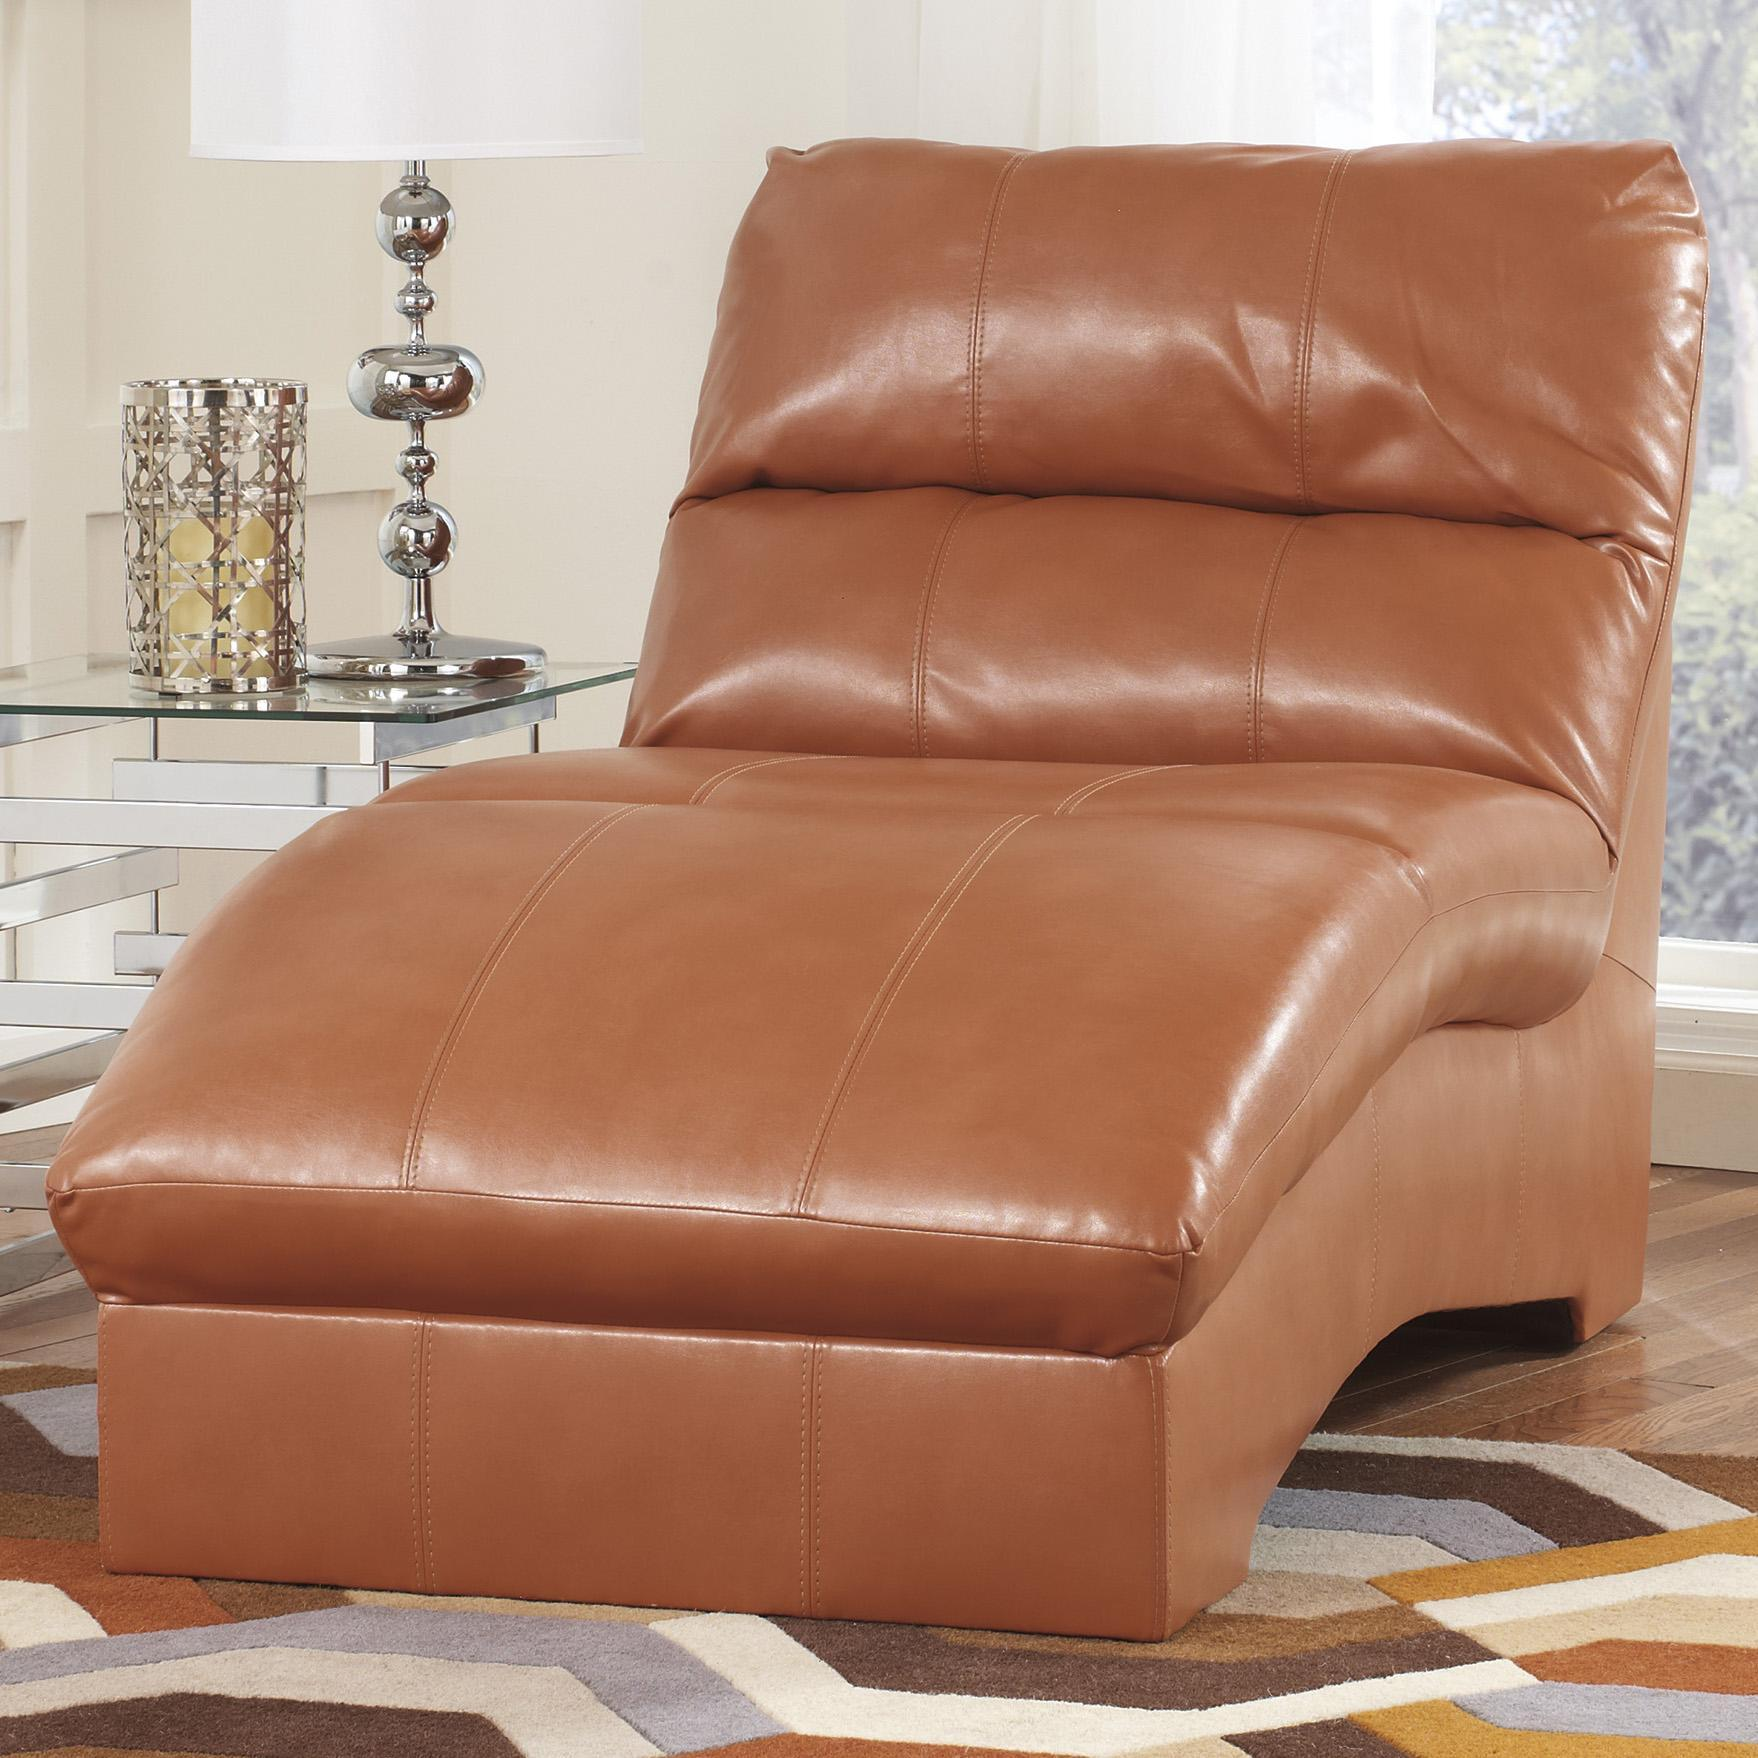 Benchcraft Paulie DuraBlend Orange Contemporary Chaise With Bonded Leather